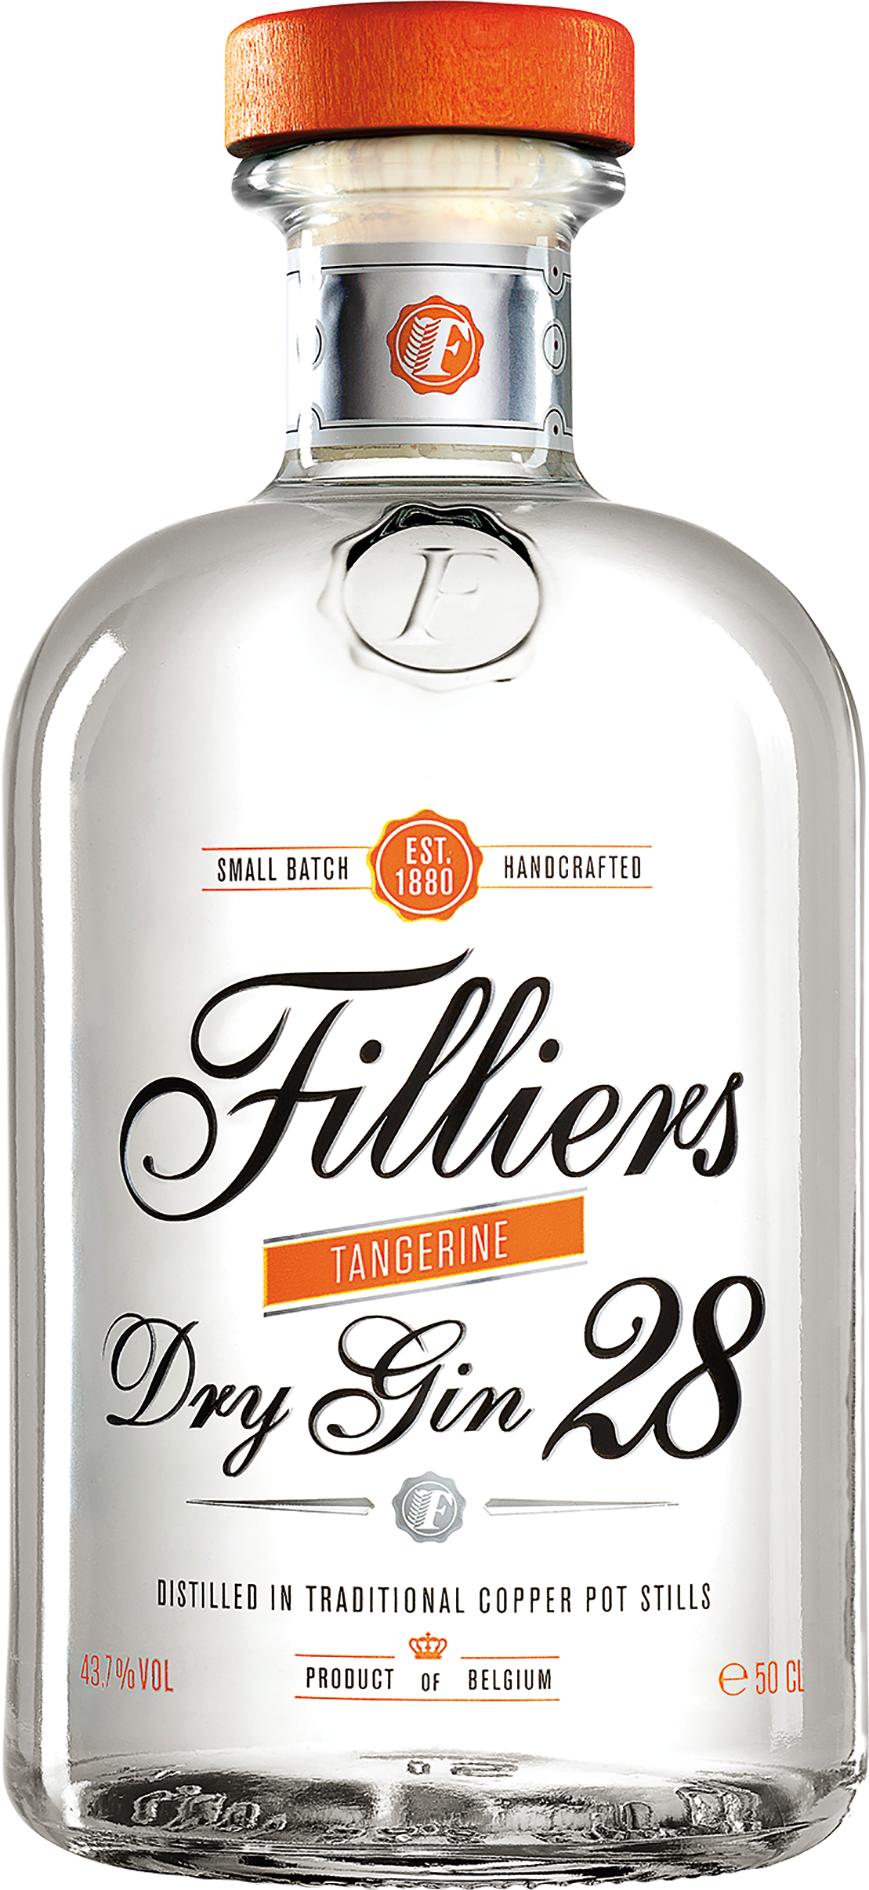 Filliers Dry Gin 28 - Tangerine